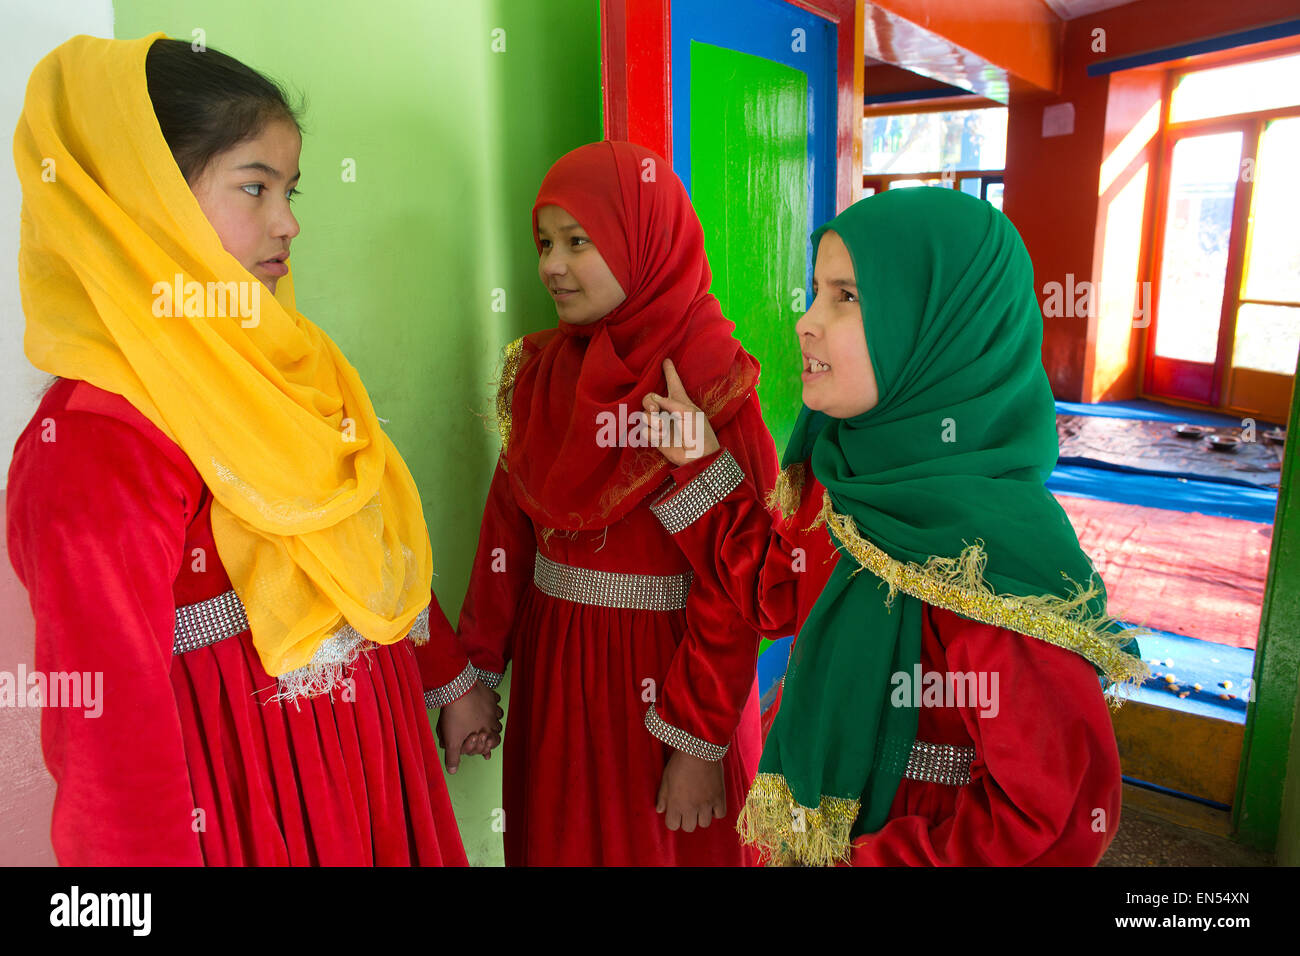 female students in kabul - Stock Image